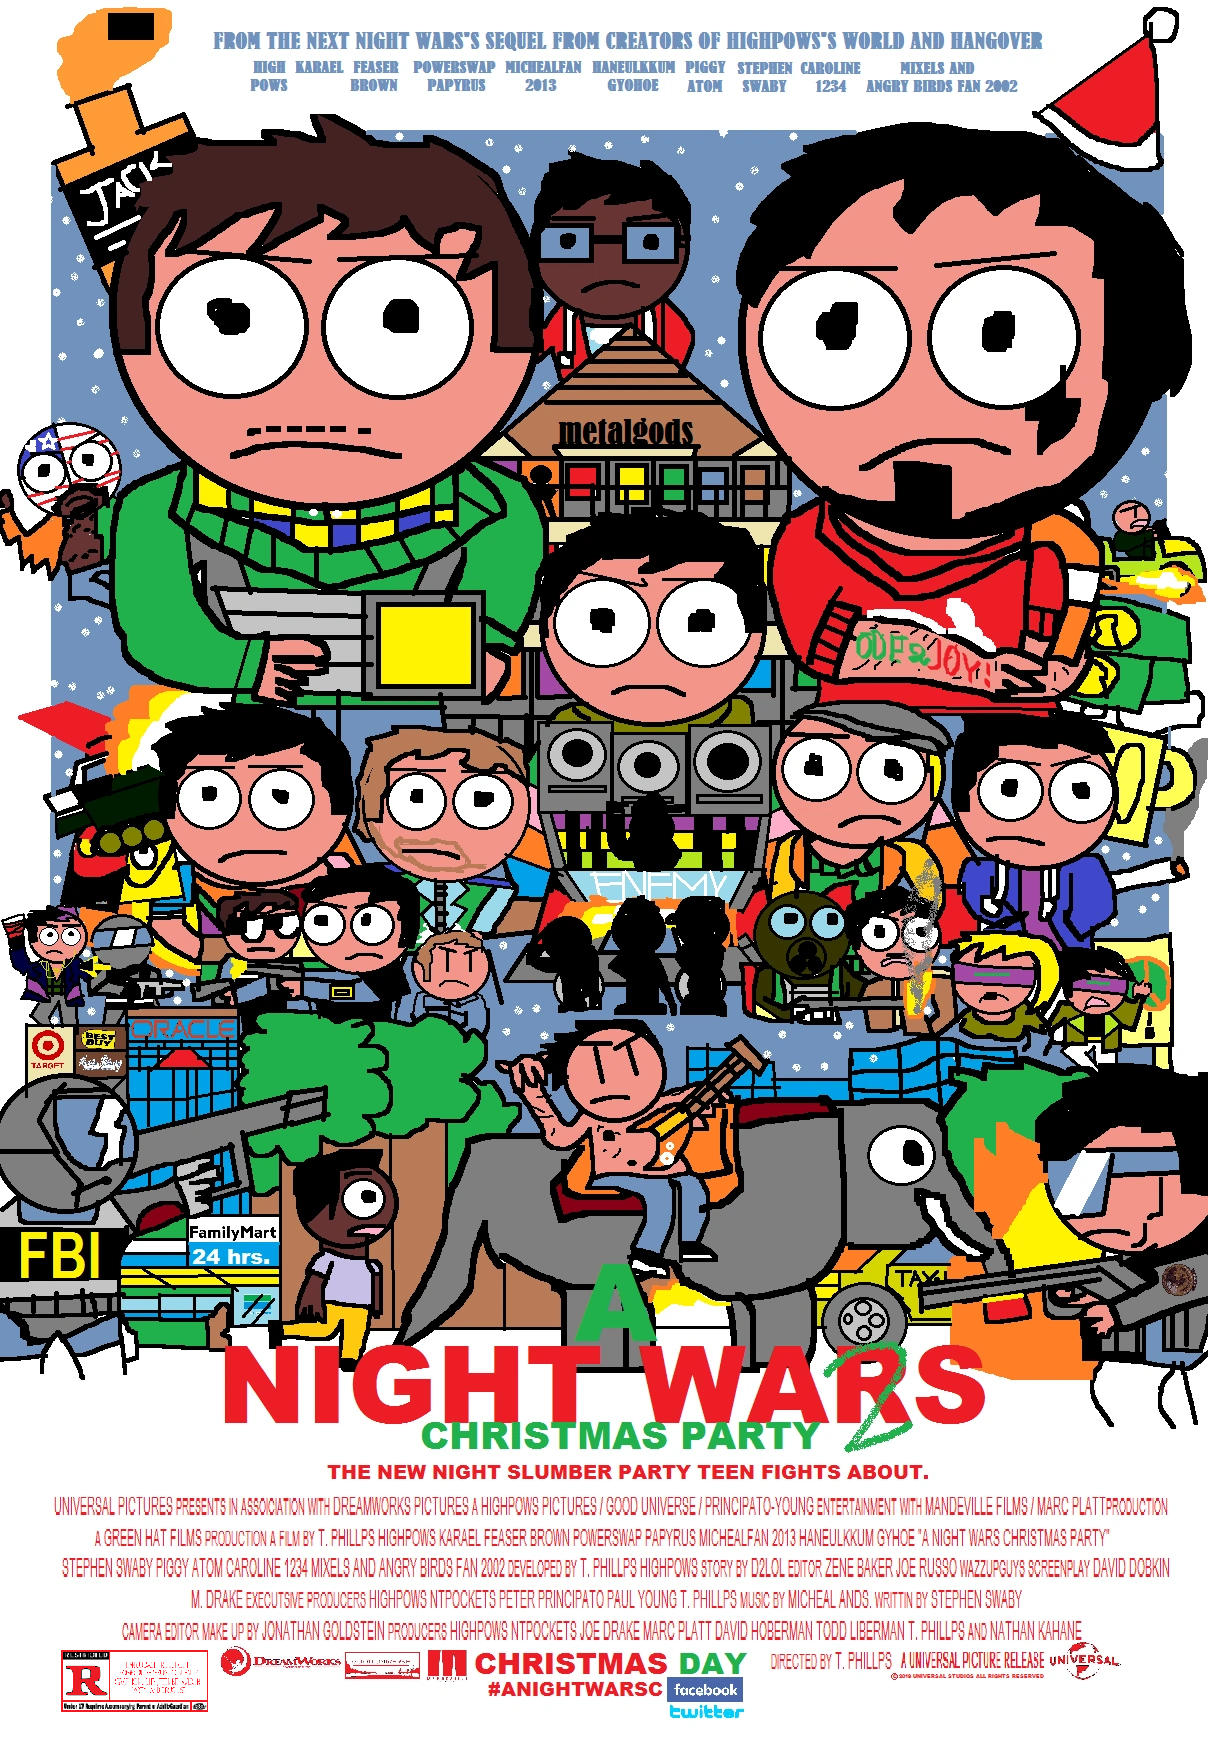 A Night Wars Christmas Party